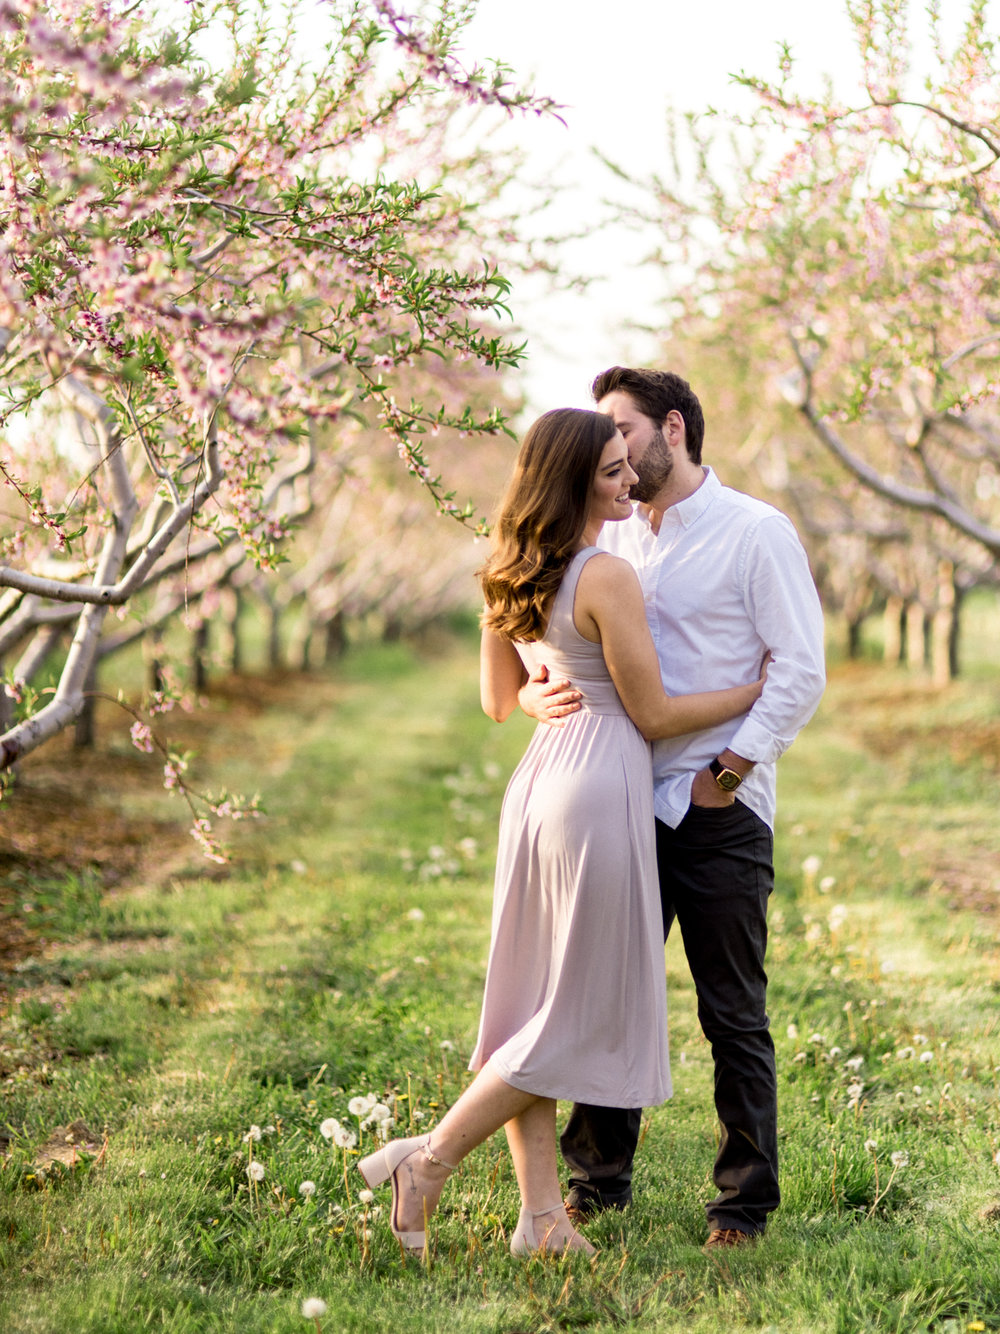 Chris & Heather's Engagement Session in Vineland Ontario Spring Blossoms Trees by Hush Hush Photography & Film Aidan Hennebry - 12.jpg